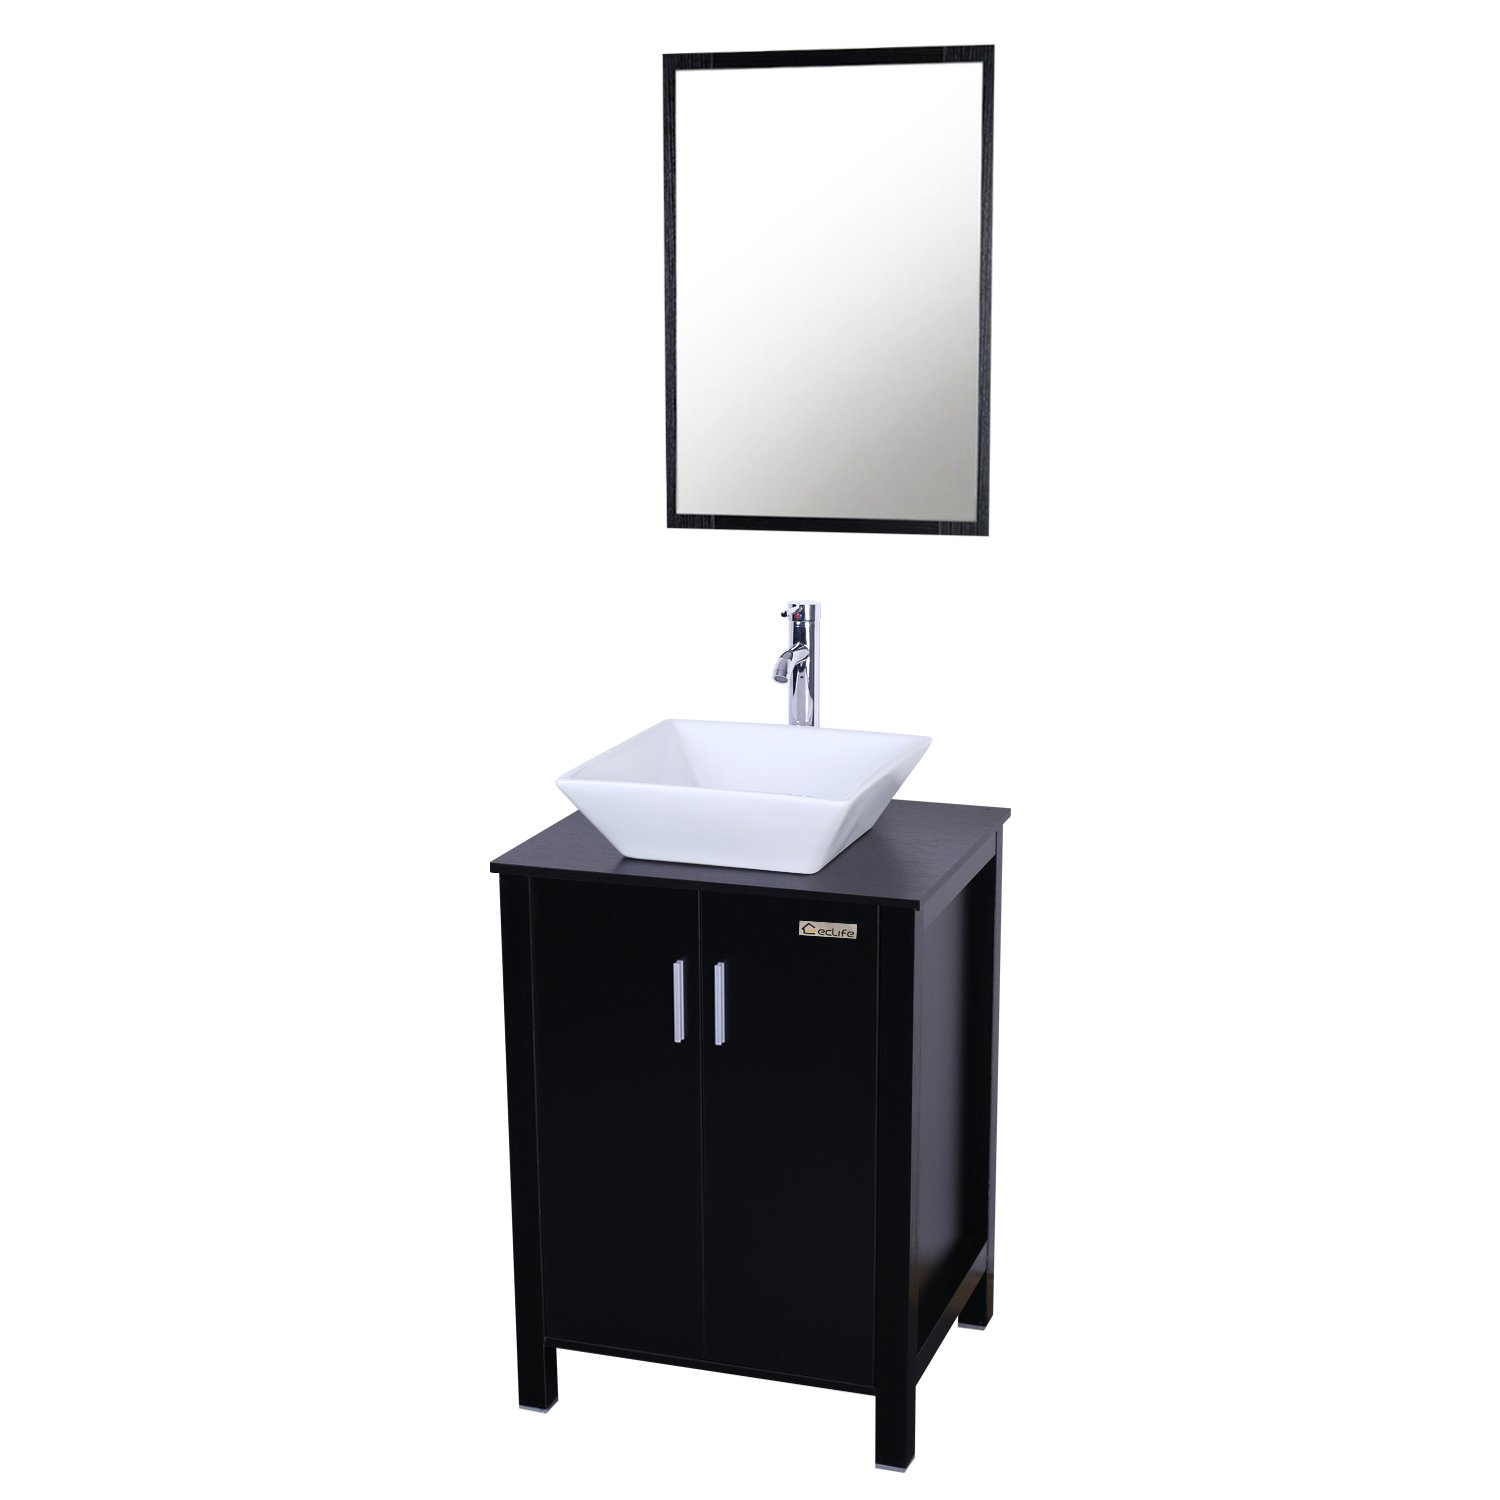 Bathroom Vanities Amazoncom Kitchen Bath Fixtures Bathroom - Wrought iron bathroom vanity stand